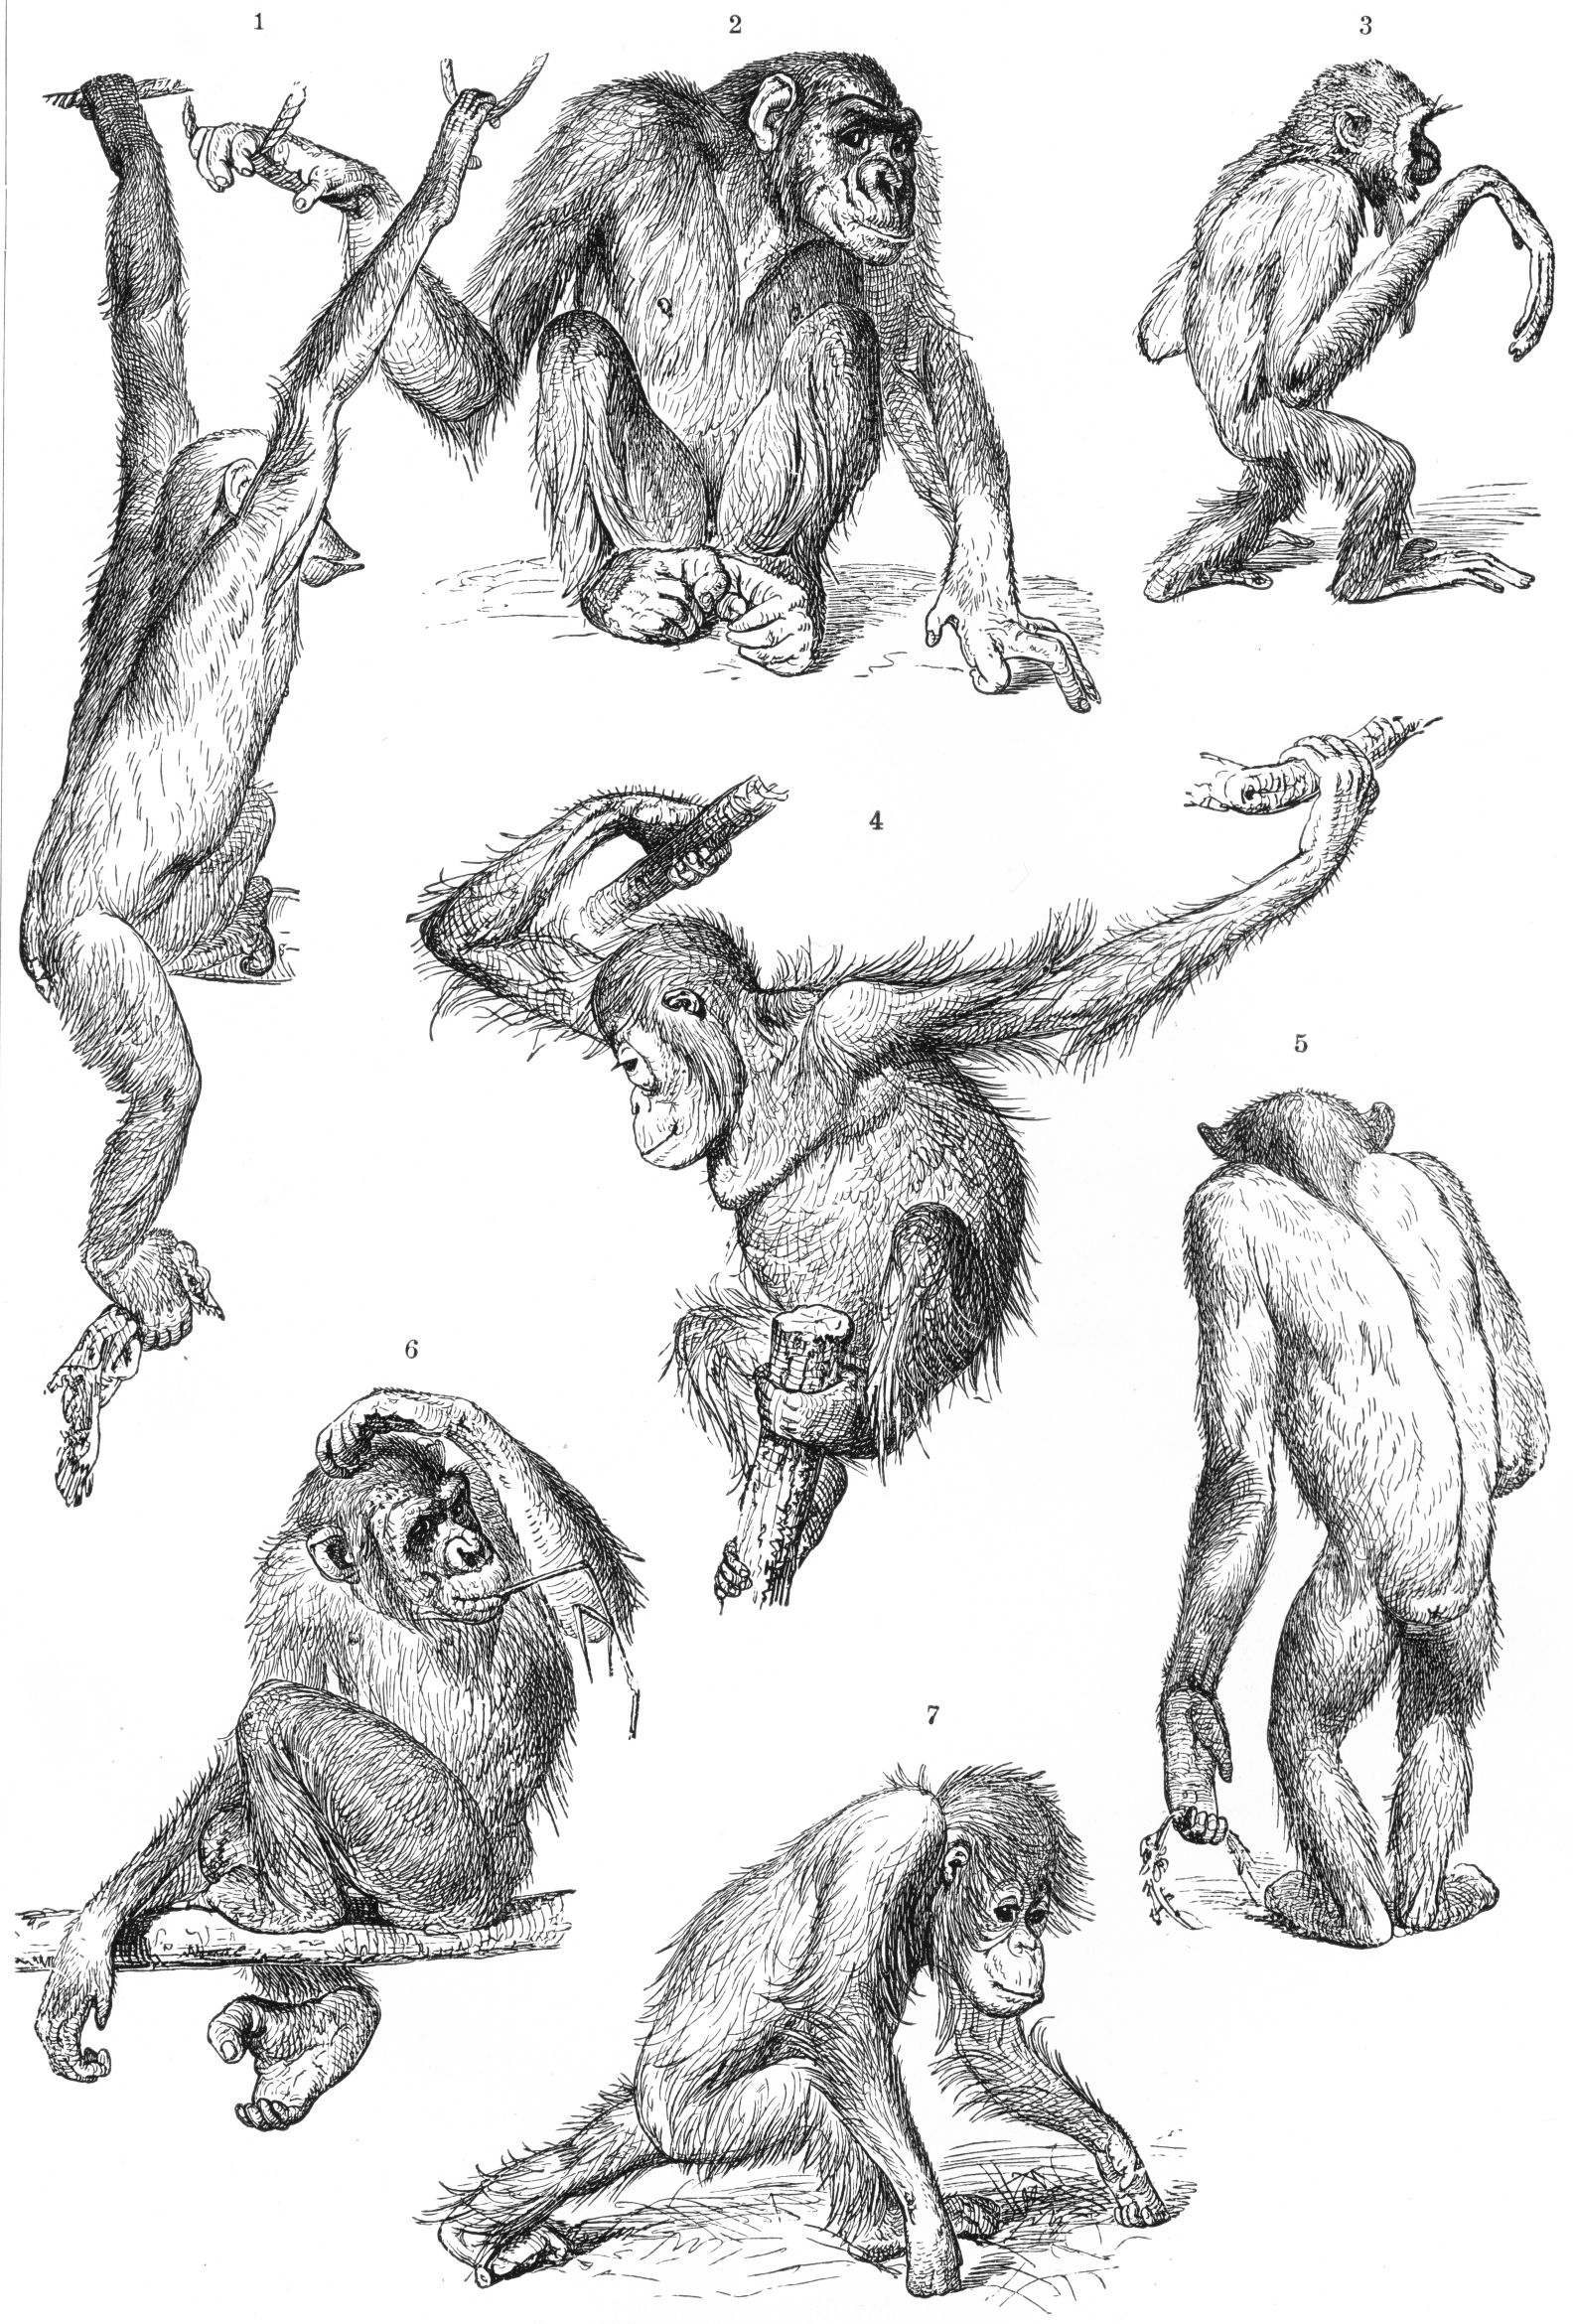 A 1927 drawing of chimpanzees, a gibbon (top right) and two orangutans (center and bottom center). The chimp in the upper left is brachiating; the orangutan at the bottom center is knuckle-walking.